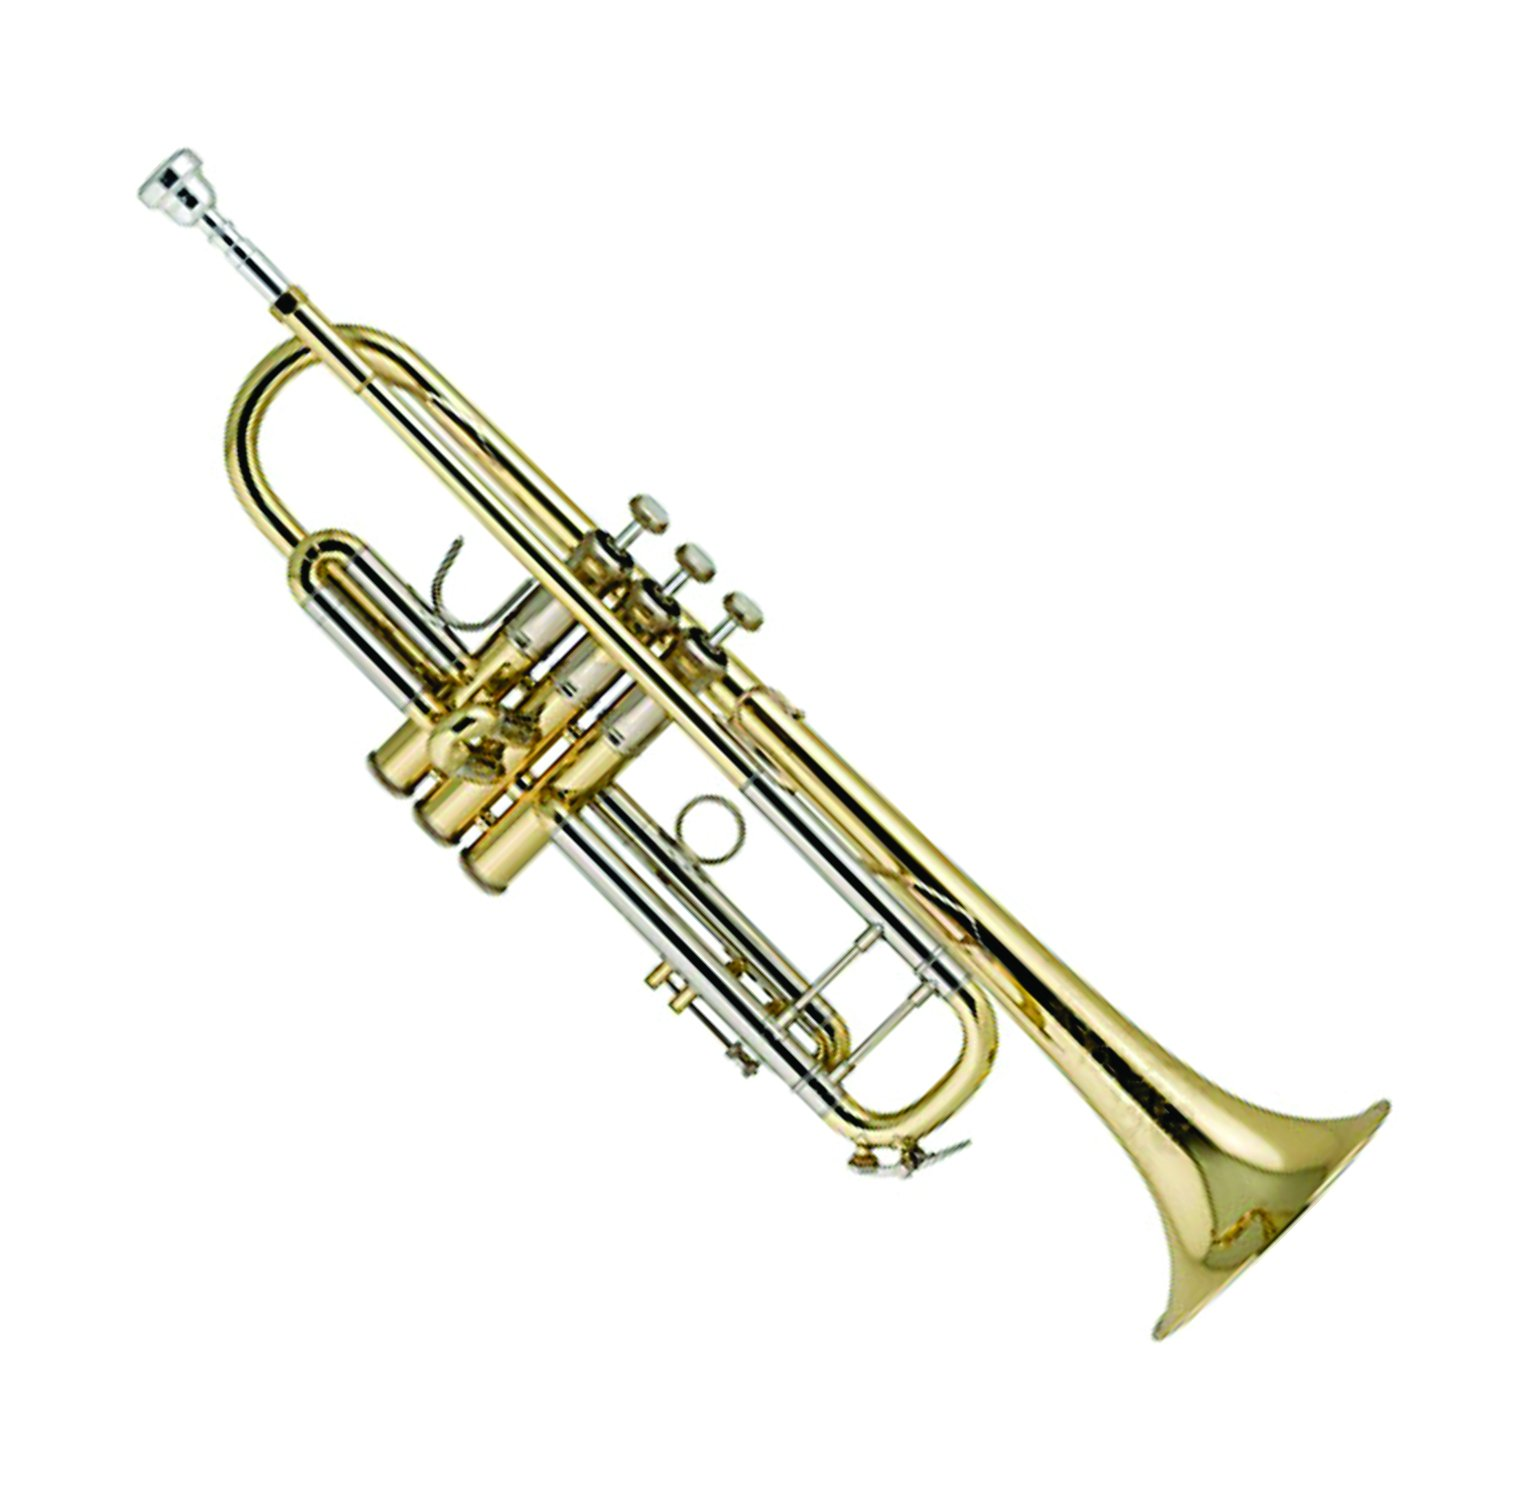 BACH 19037 Professional Bb Trumpet